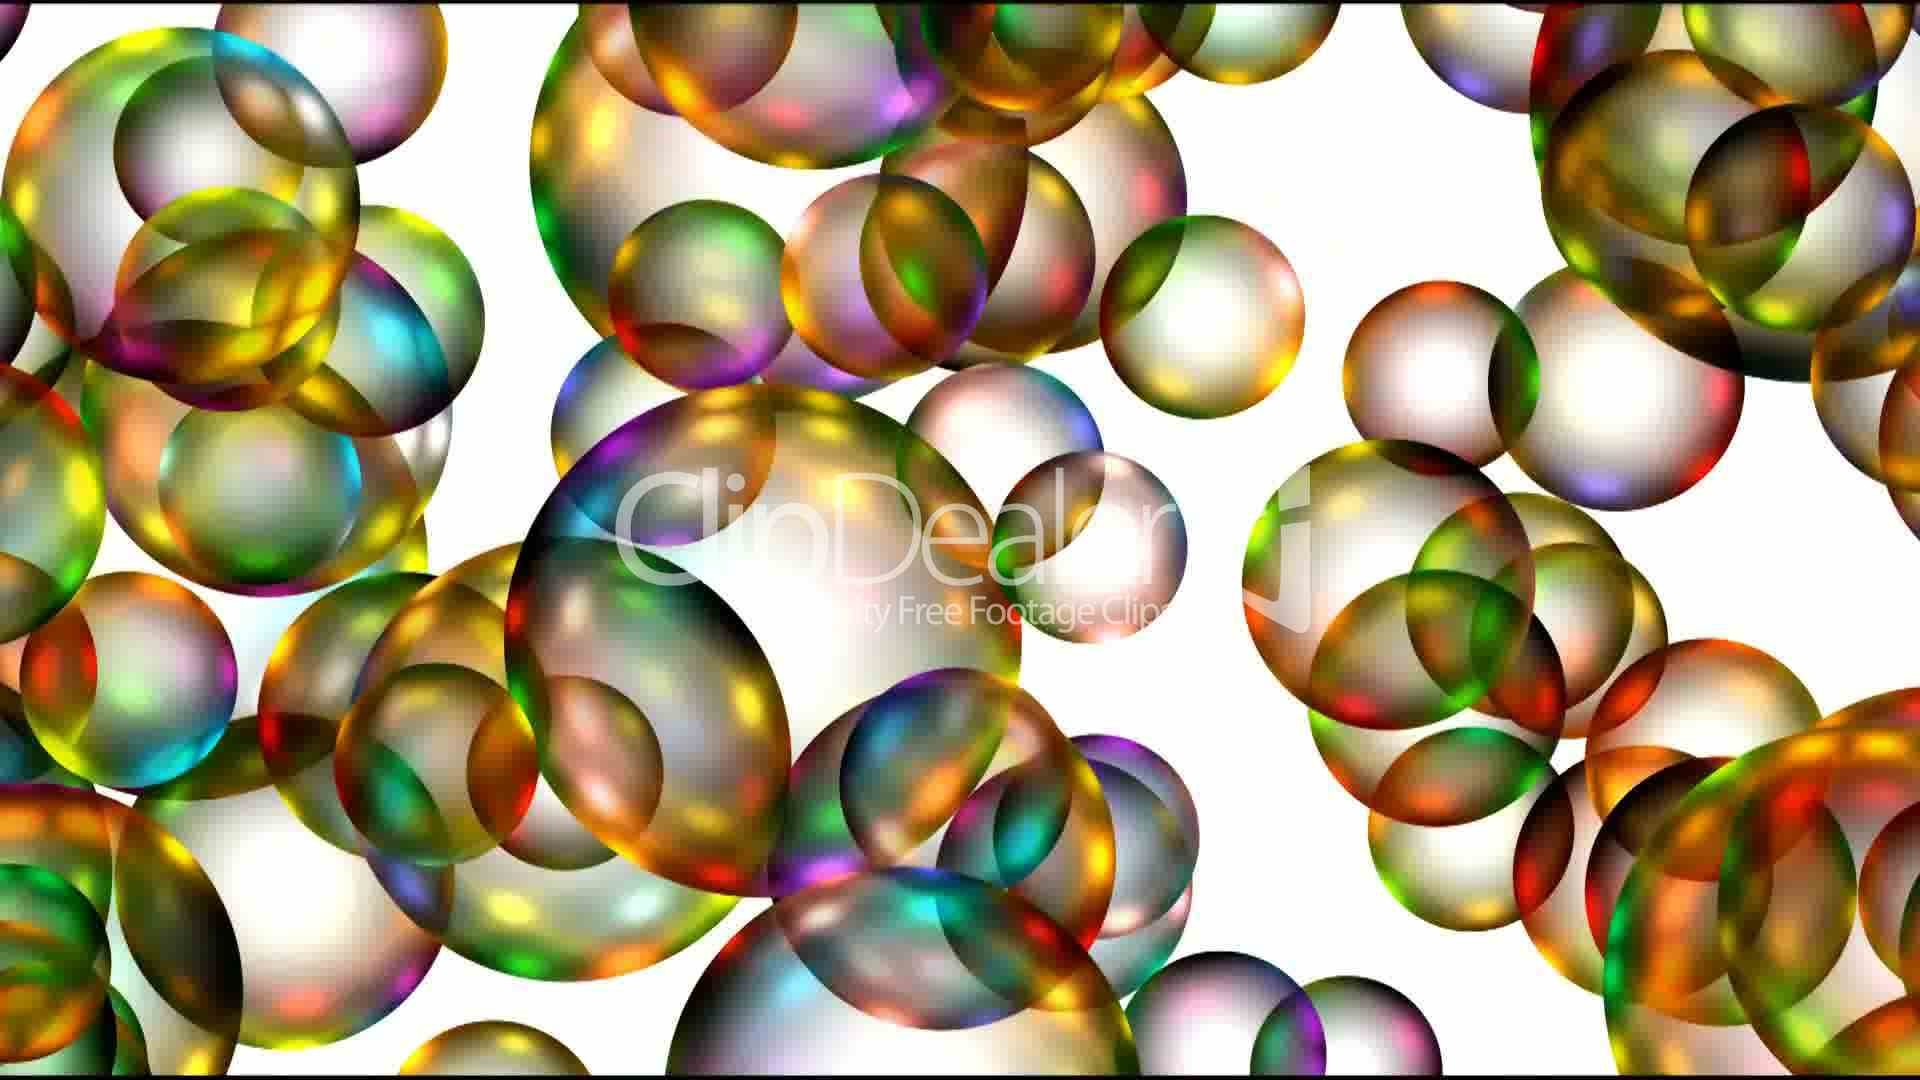 Animation of color balls or bubble,disco mirrorball Drop